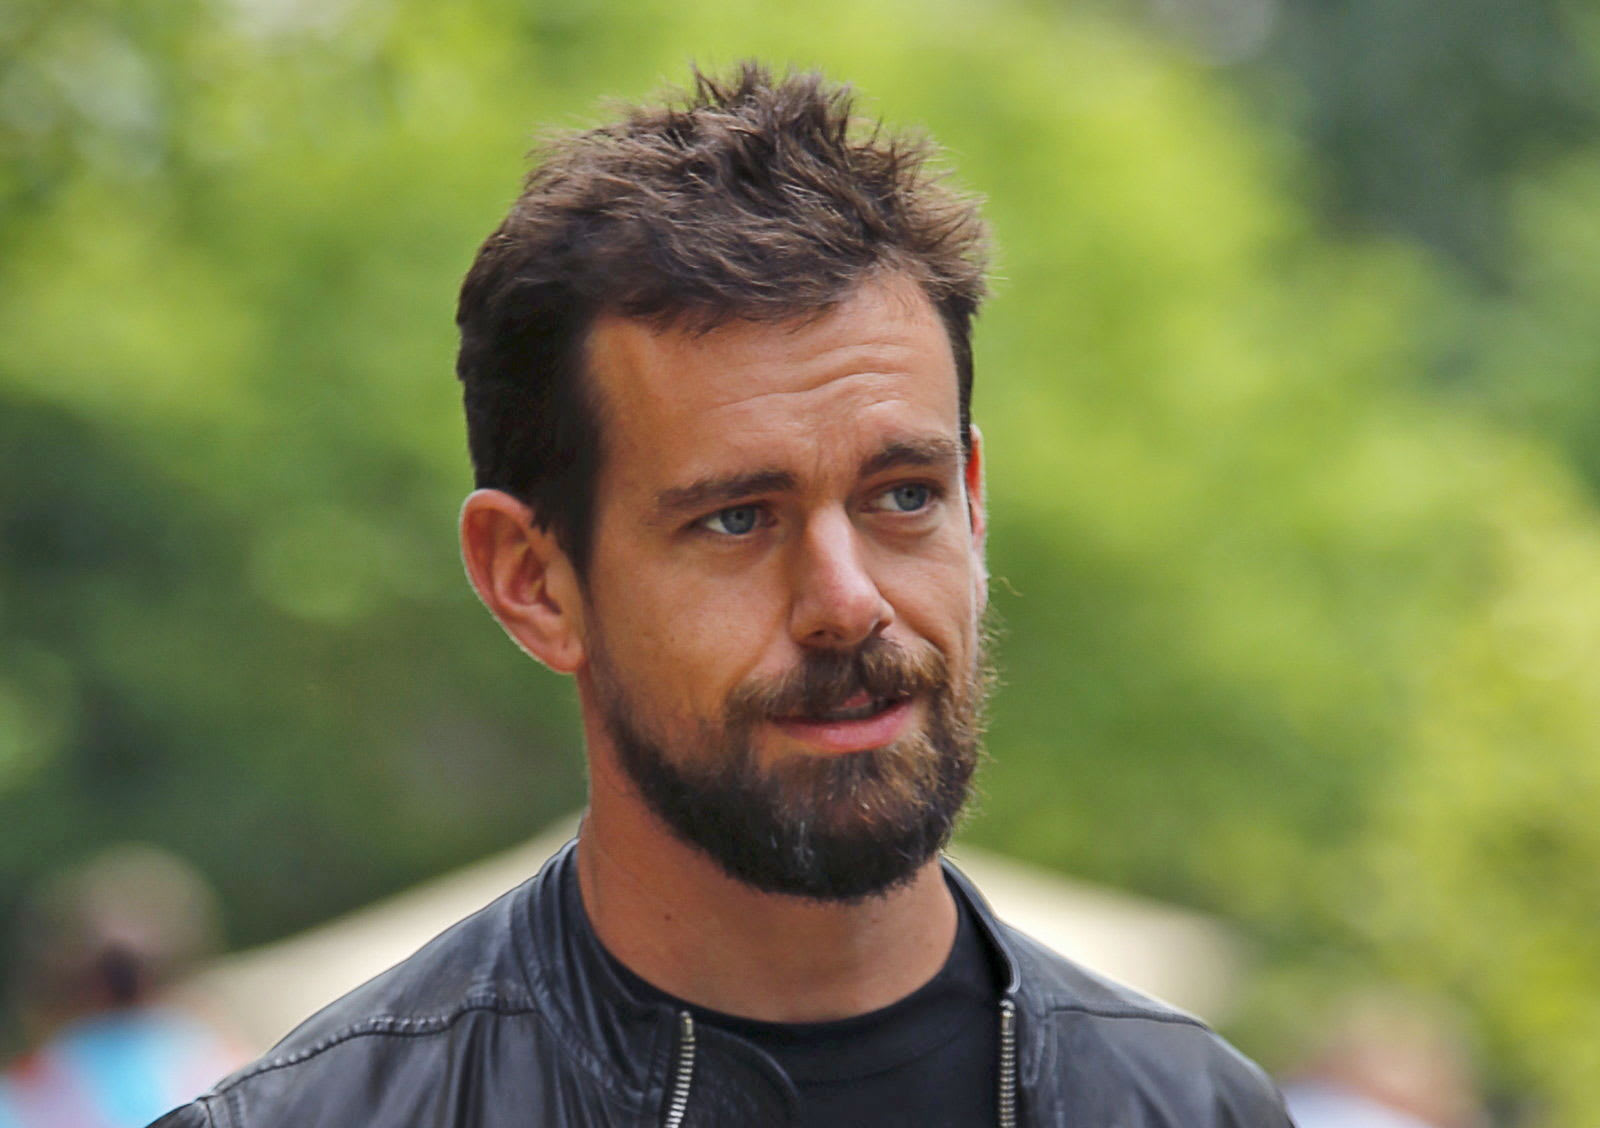 Jack Dorsey: Twitter isn't guided by 'political ideology'Jack Dorsey